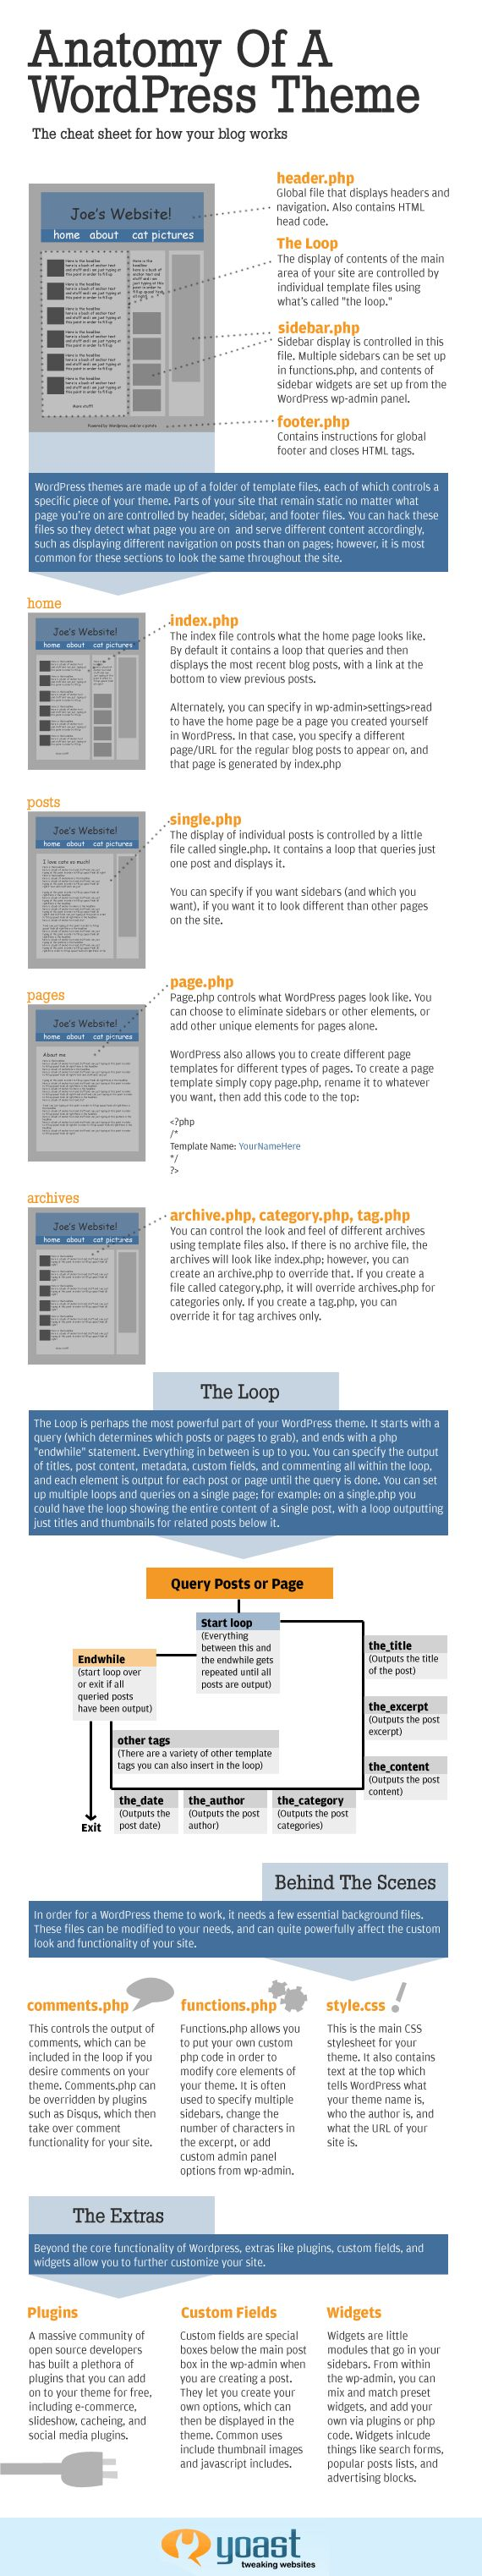 INFOGRAPHIC: Anatomy of a Wordpress theme...a cheat sheet for how your Blog works.